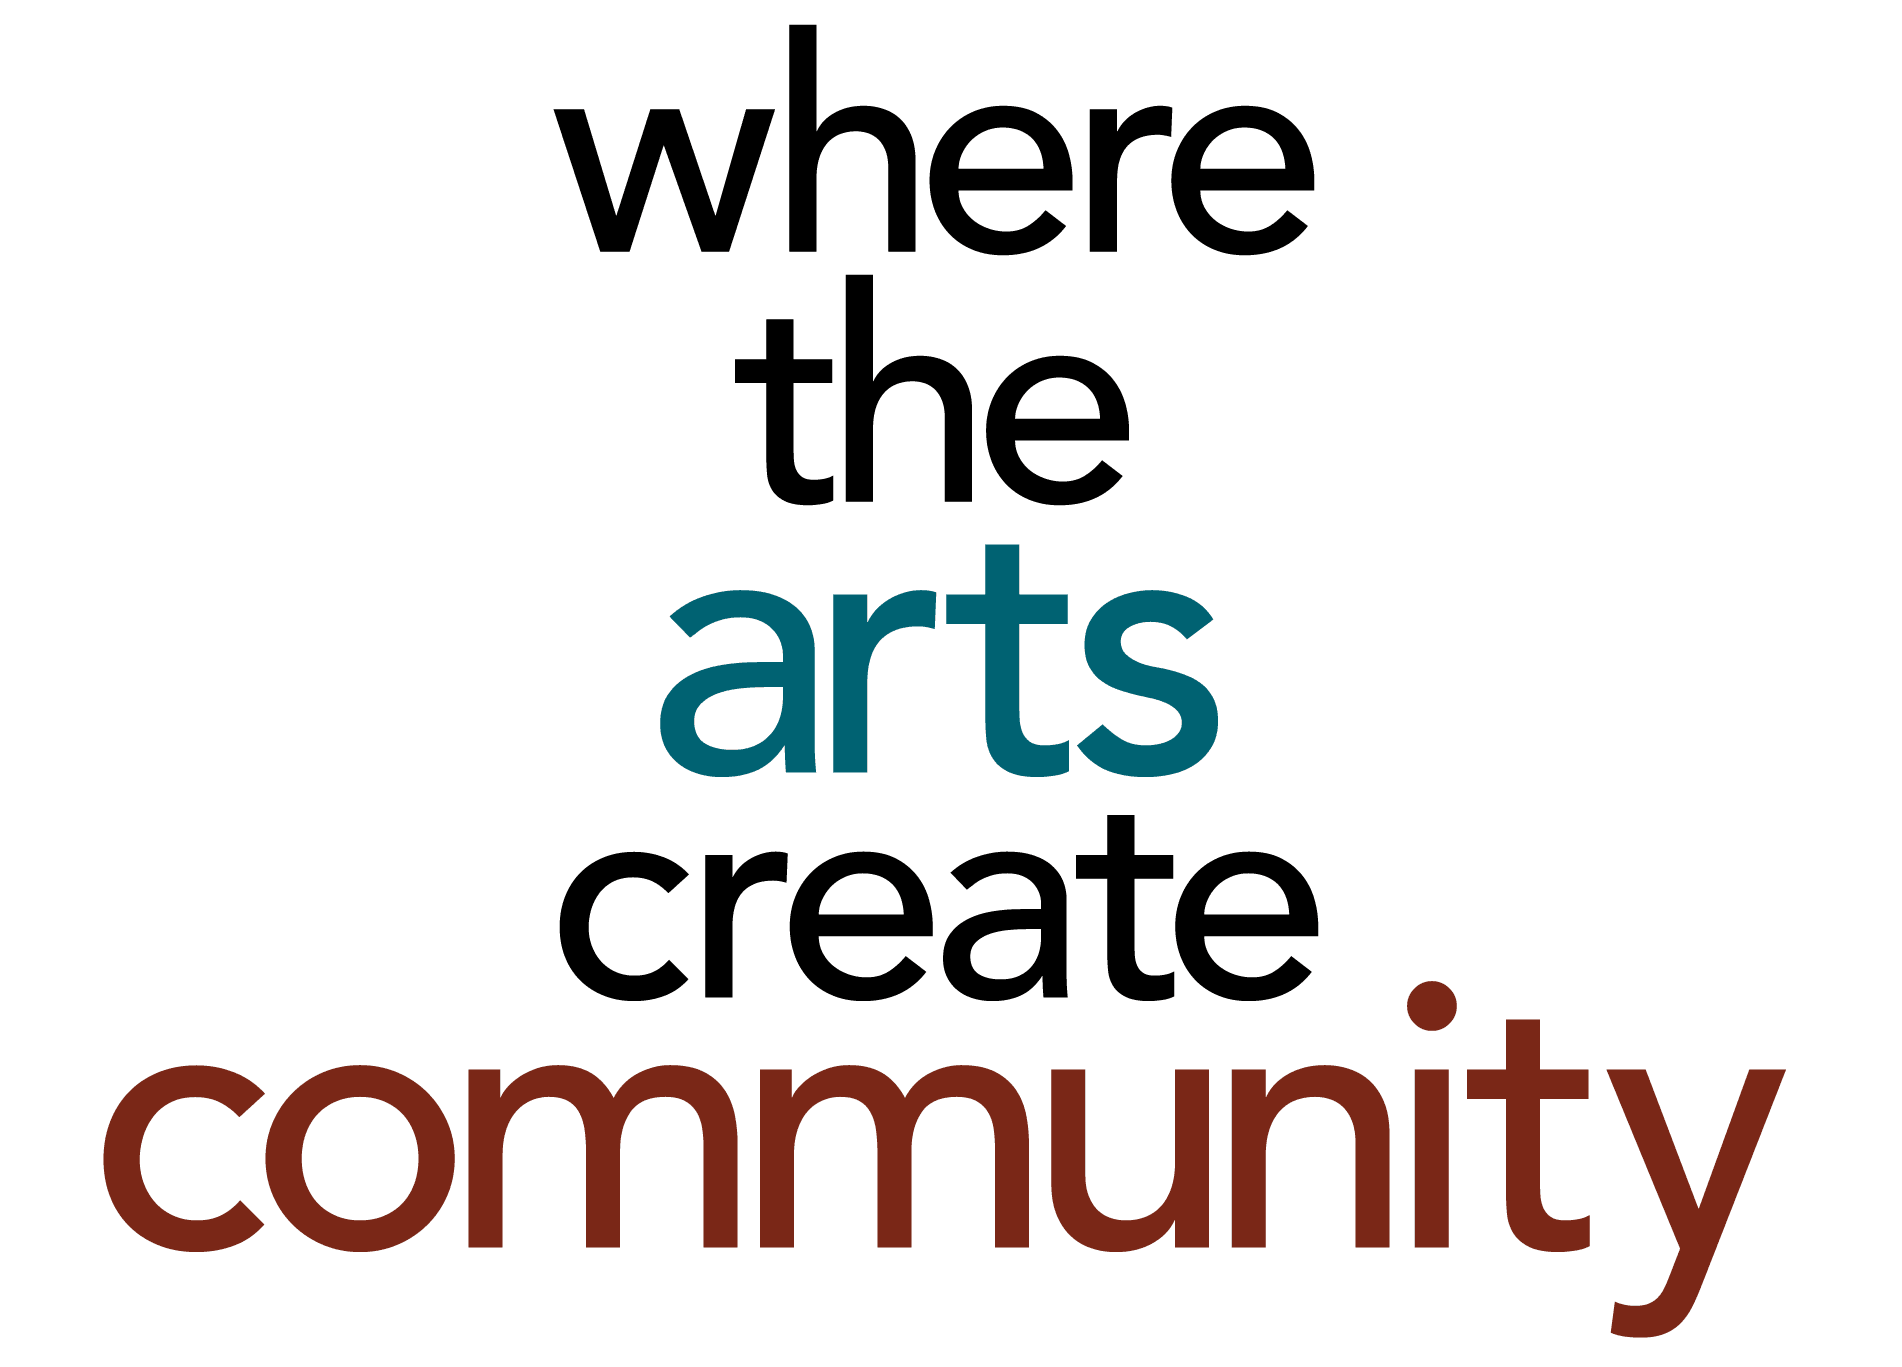 where-the-arts-create-community (1)